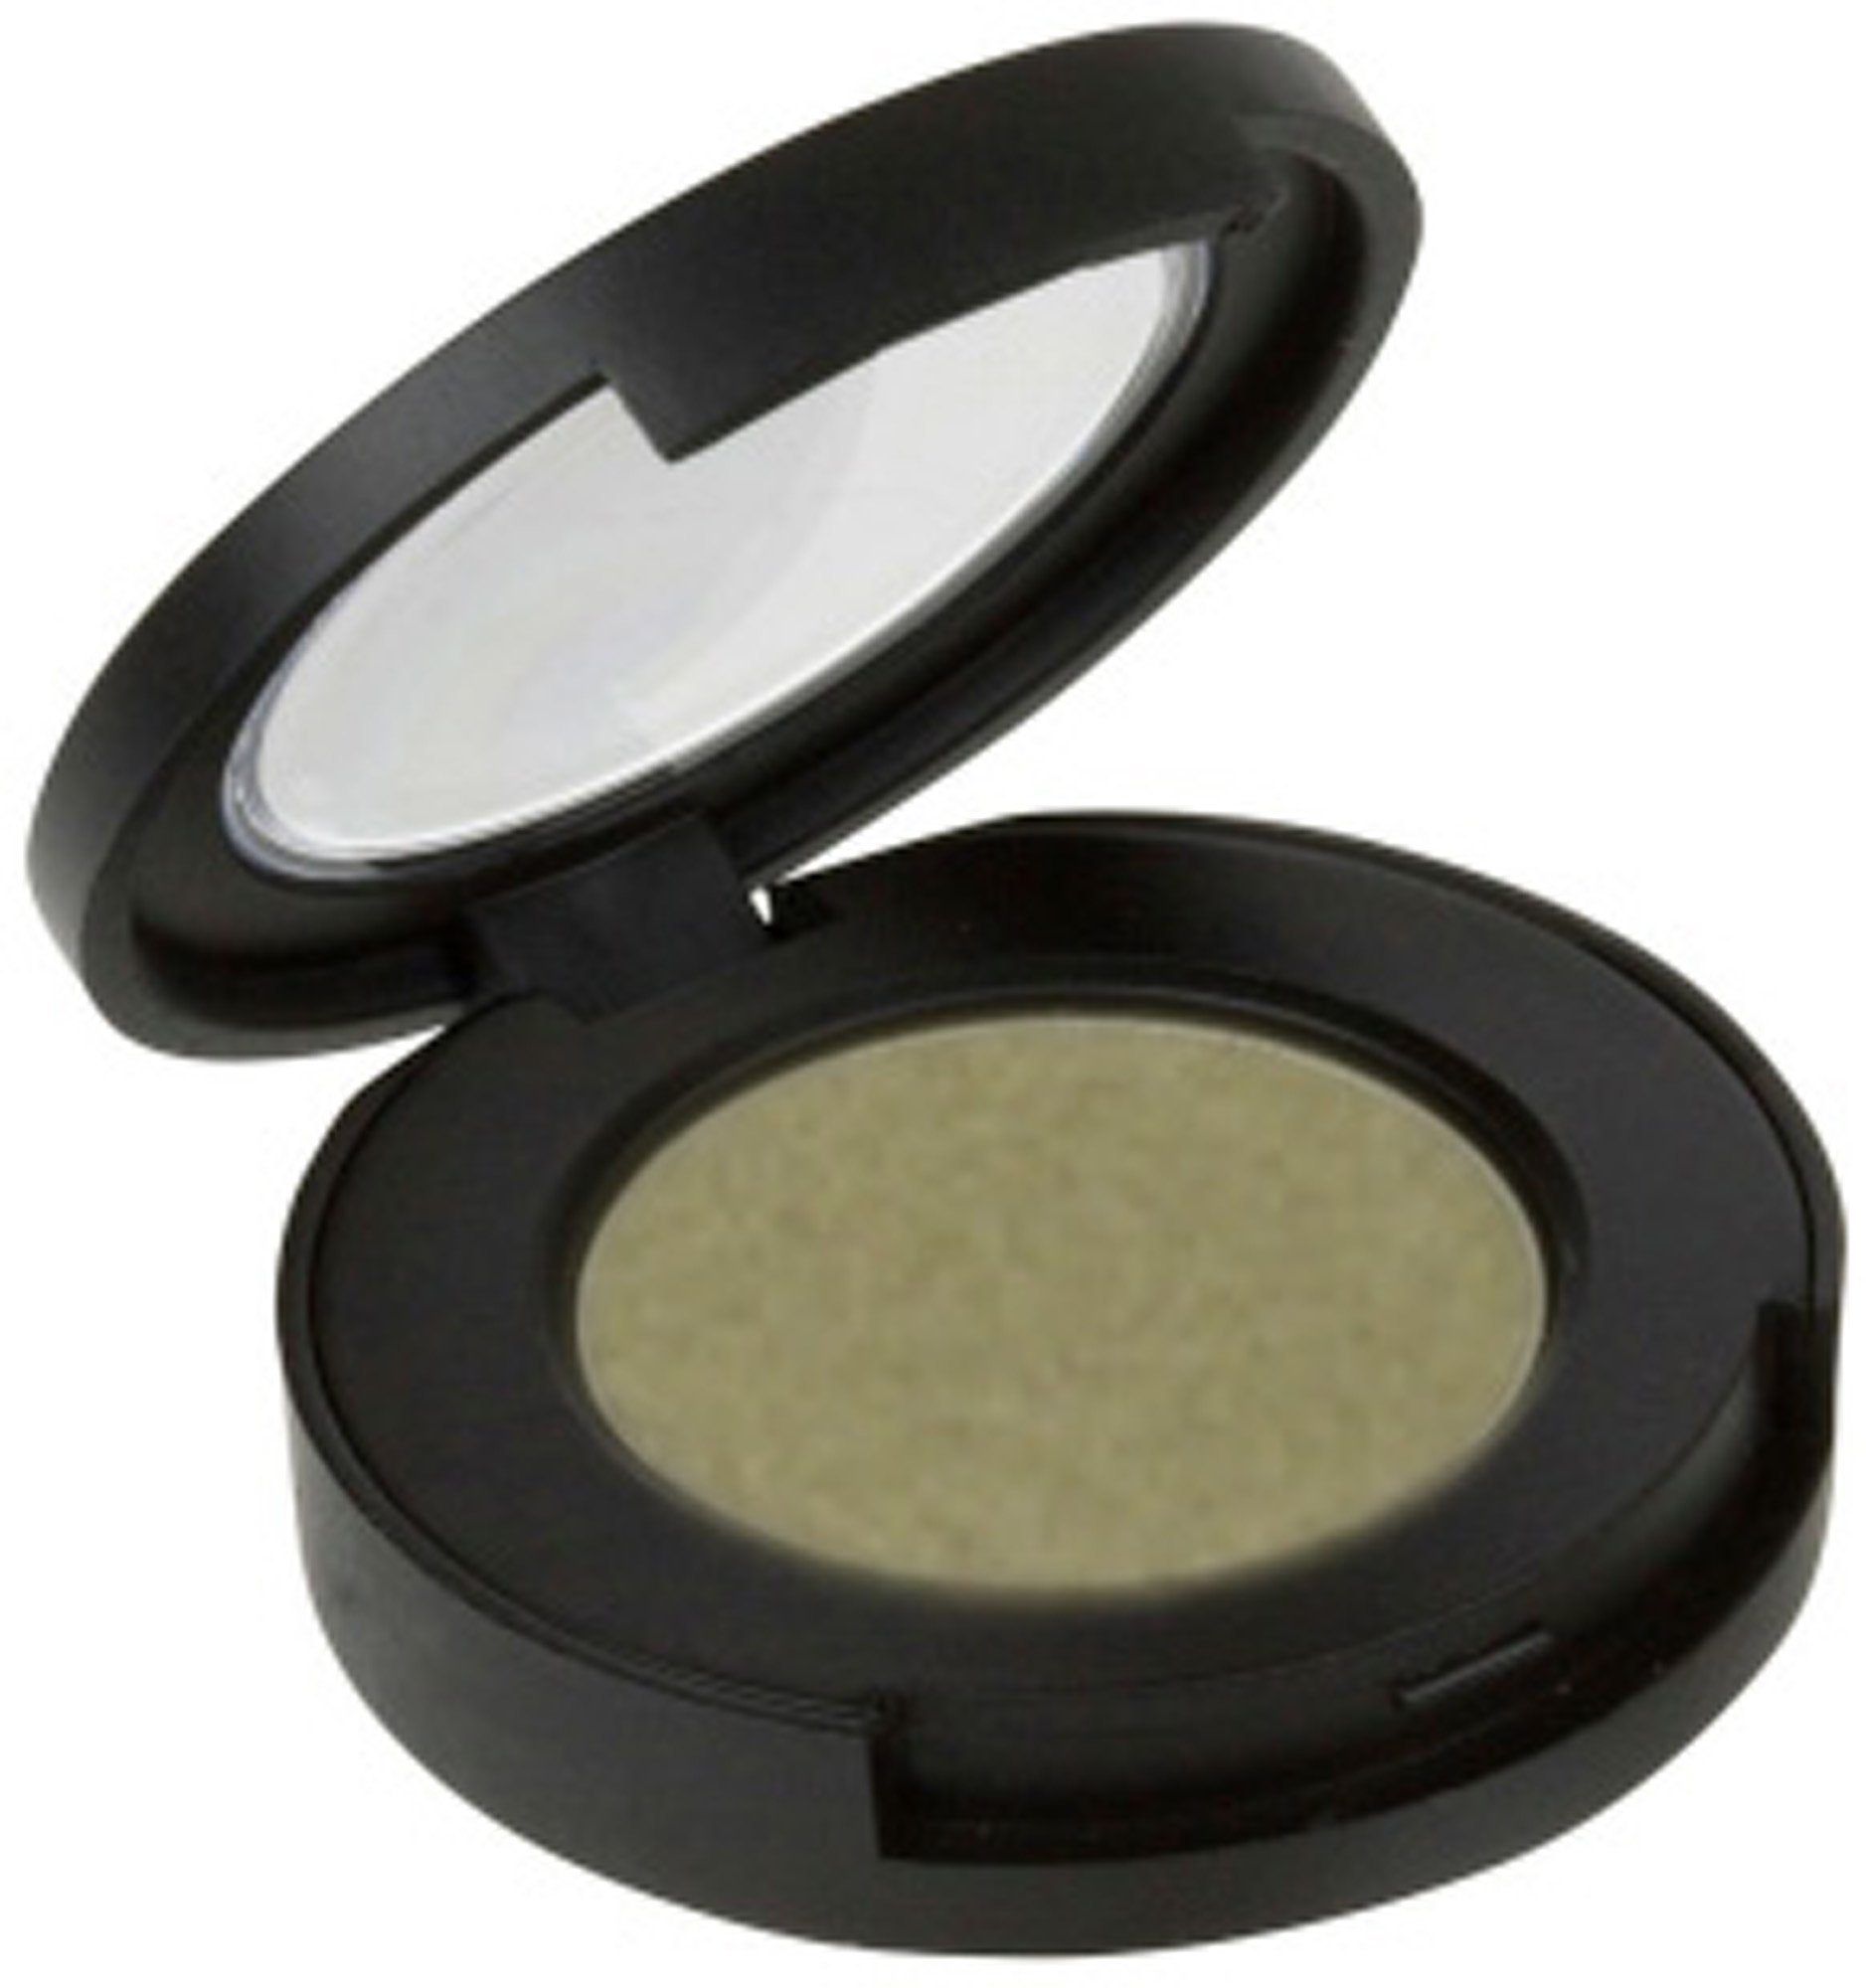 Mineral Eyeshadow - Golden Sage #12 - Formulation and Foundation of Natural Minerals/Powder - Shades/Magic Finish to Apply and Grace Your Face. By Jill Kirsh Color, Hollywood's Guru of Hue